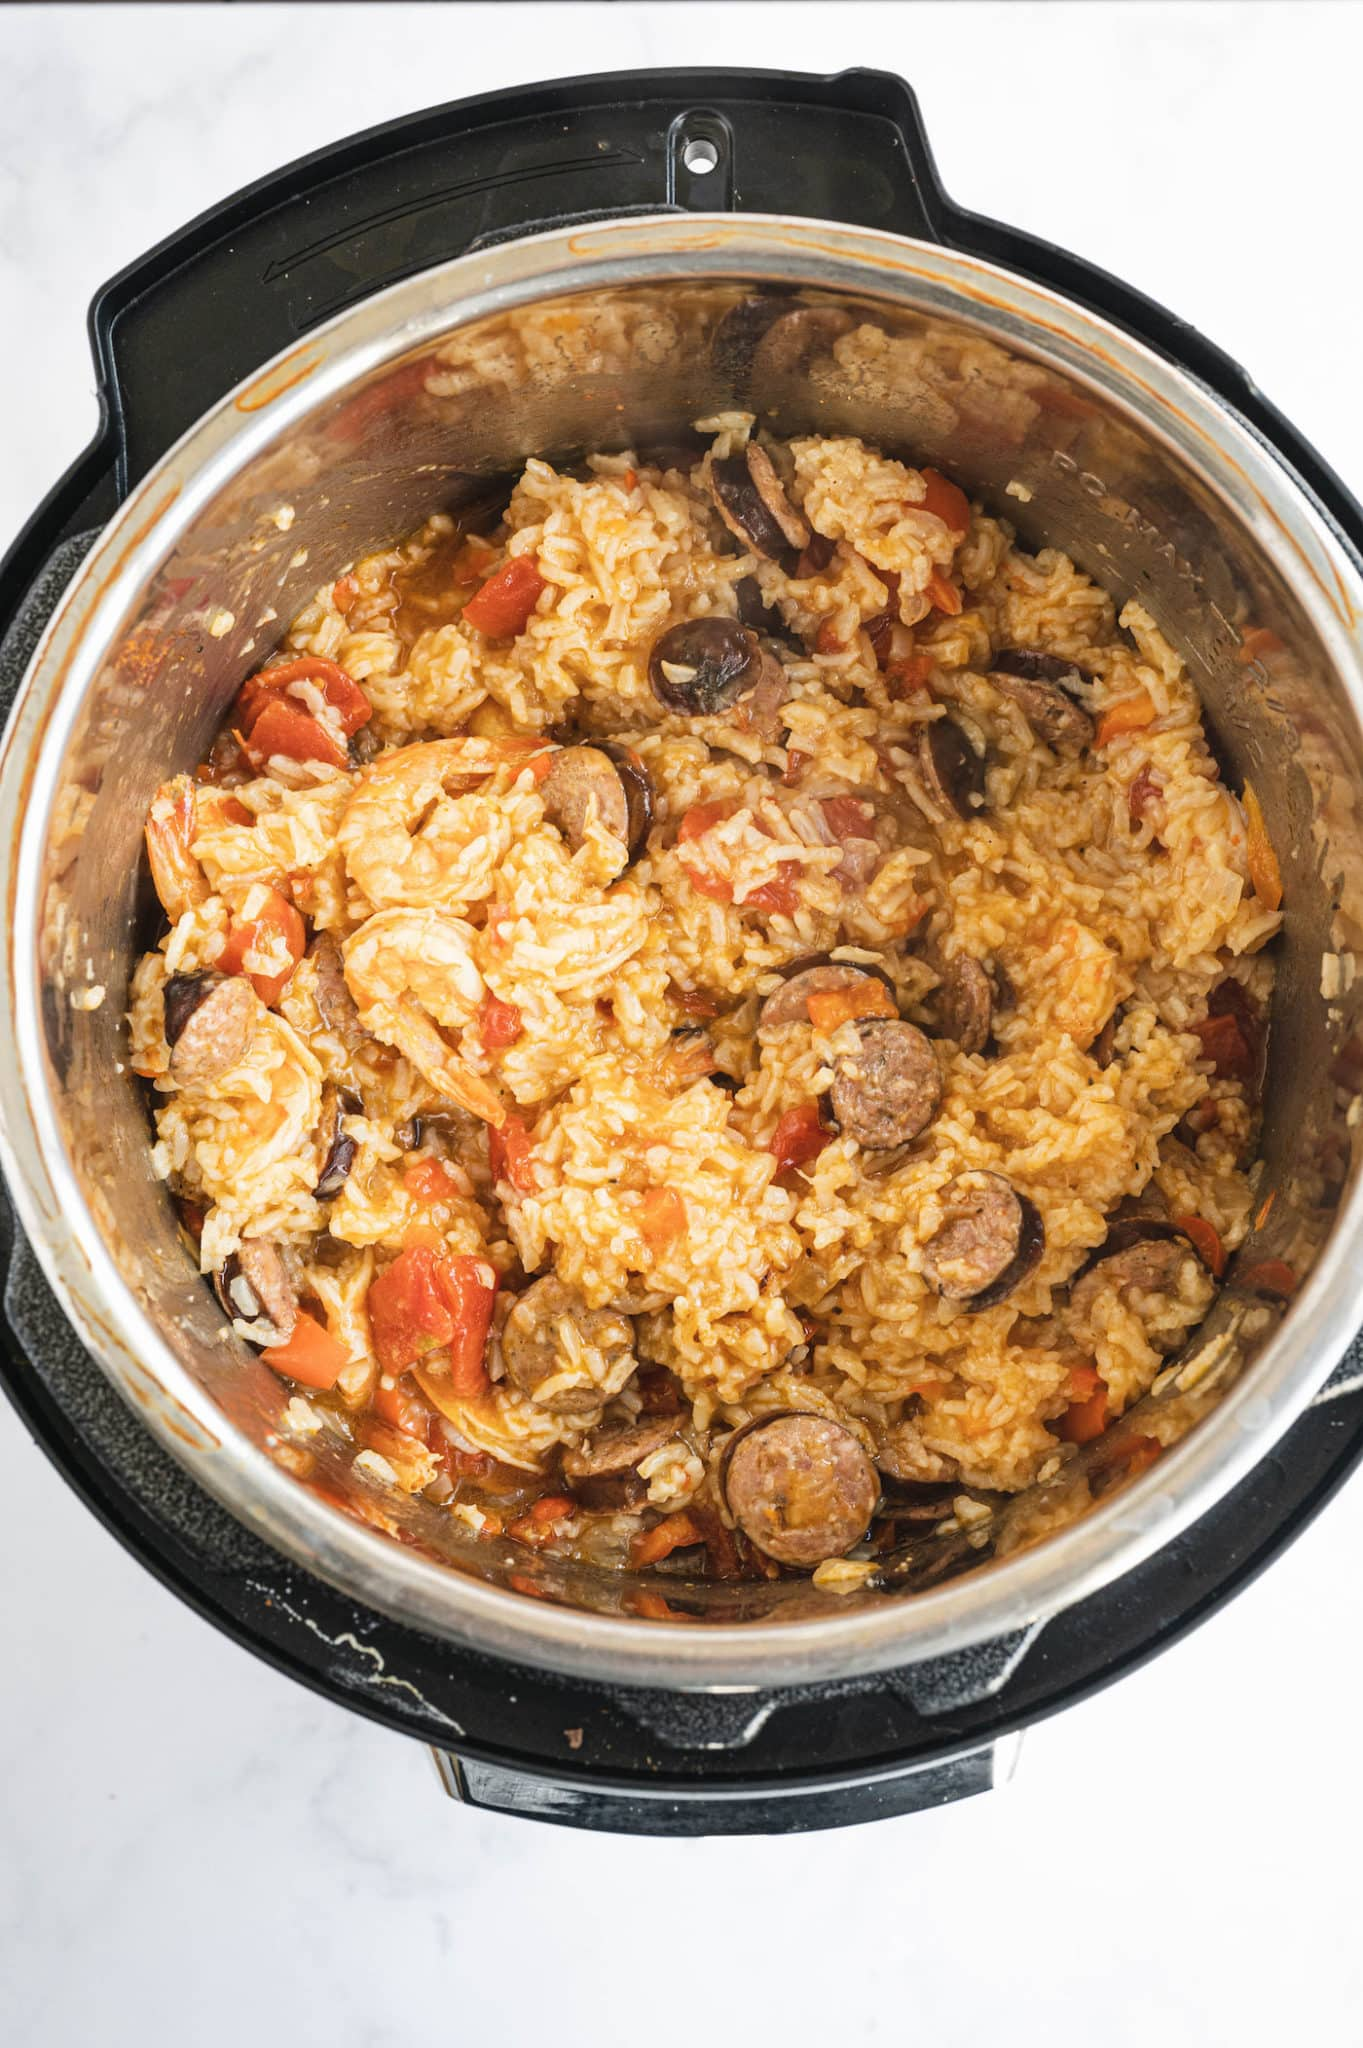 cooked instant pot jambalaya ready to be served